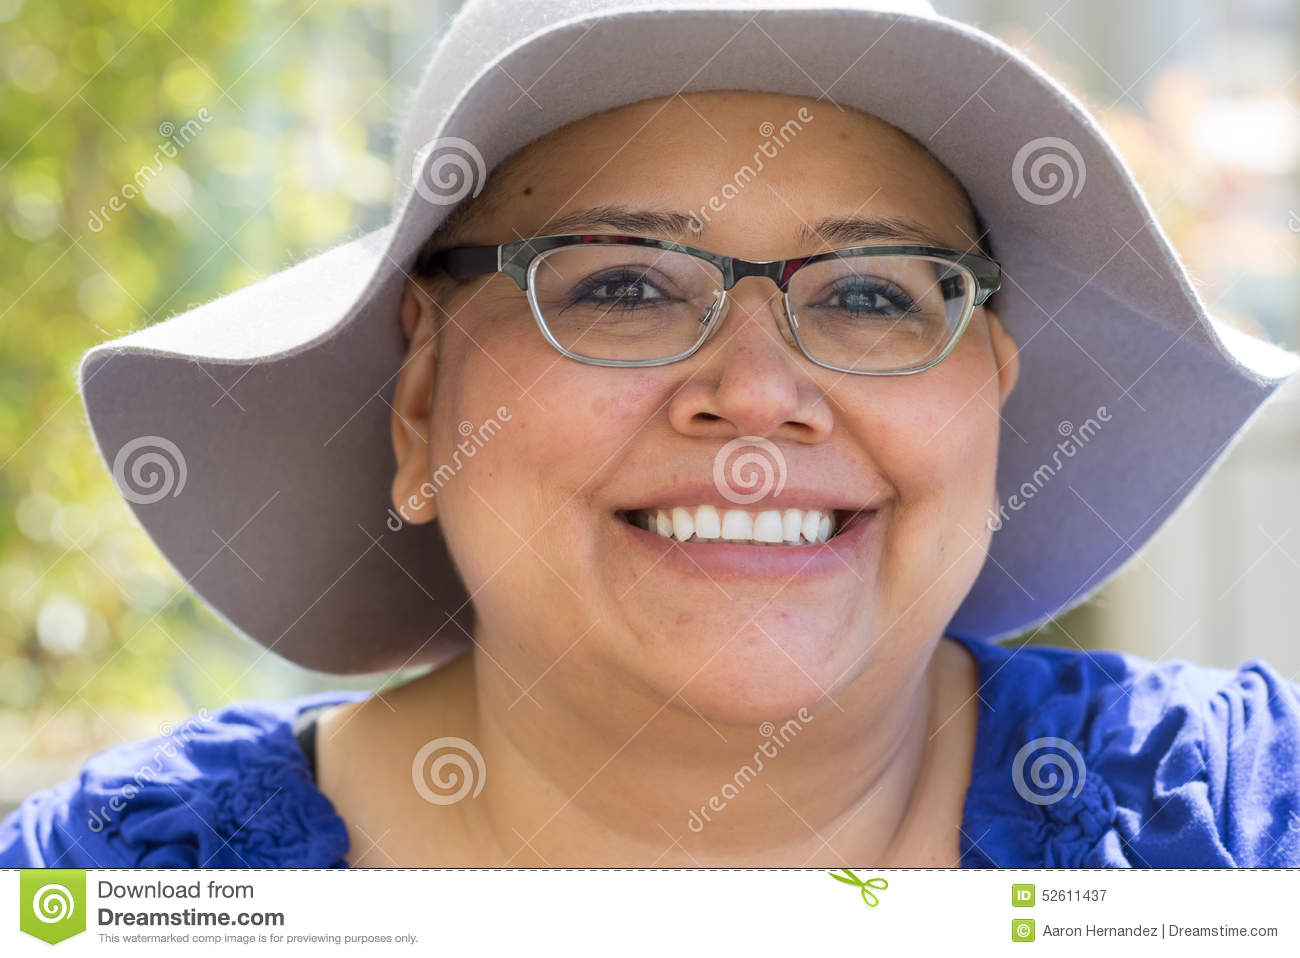 f995c9e9b36 Cancer Patient Wears Hat For Sun Protection Stock Image - Image of ...